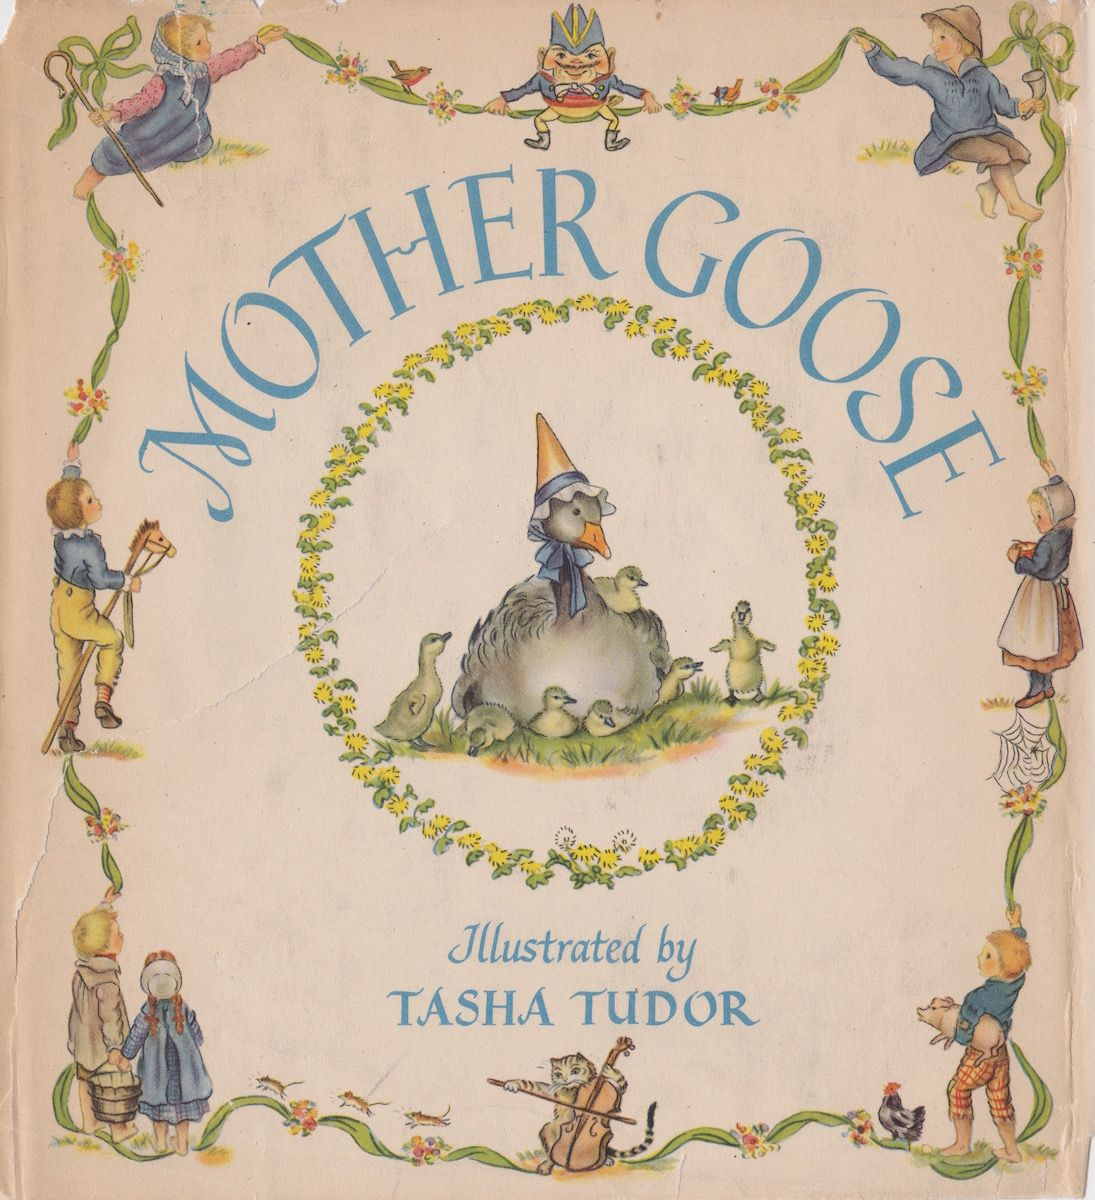 mother-goose-cover